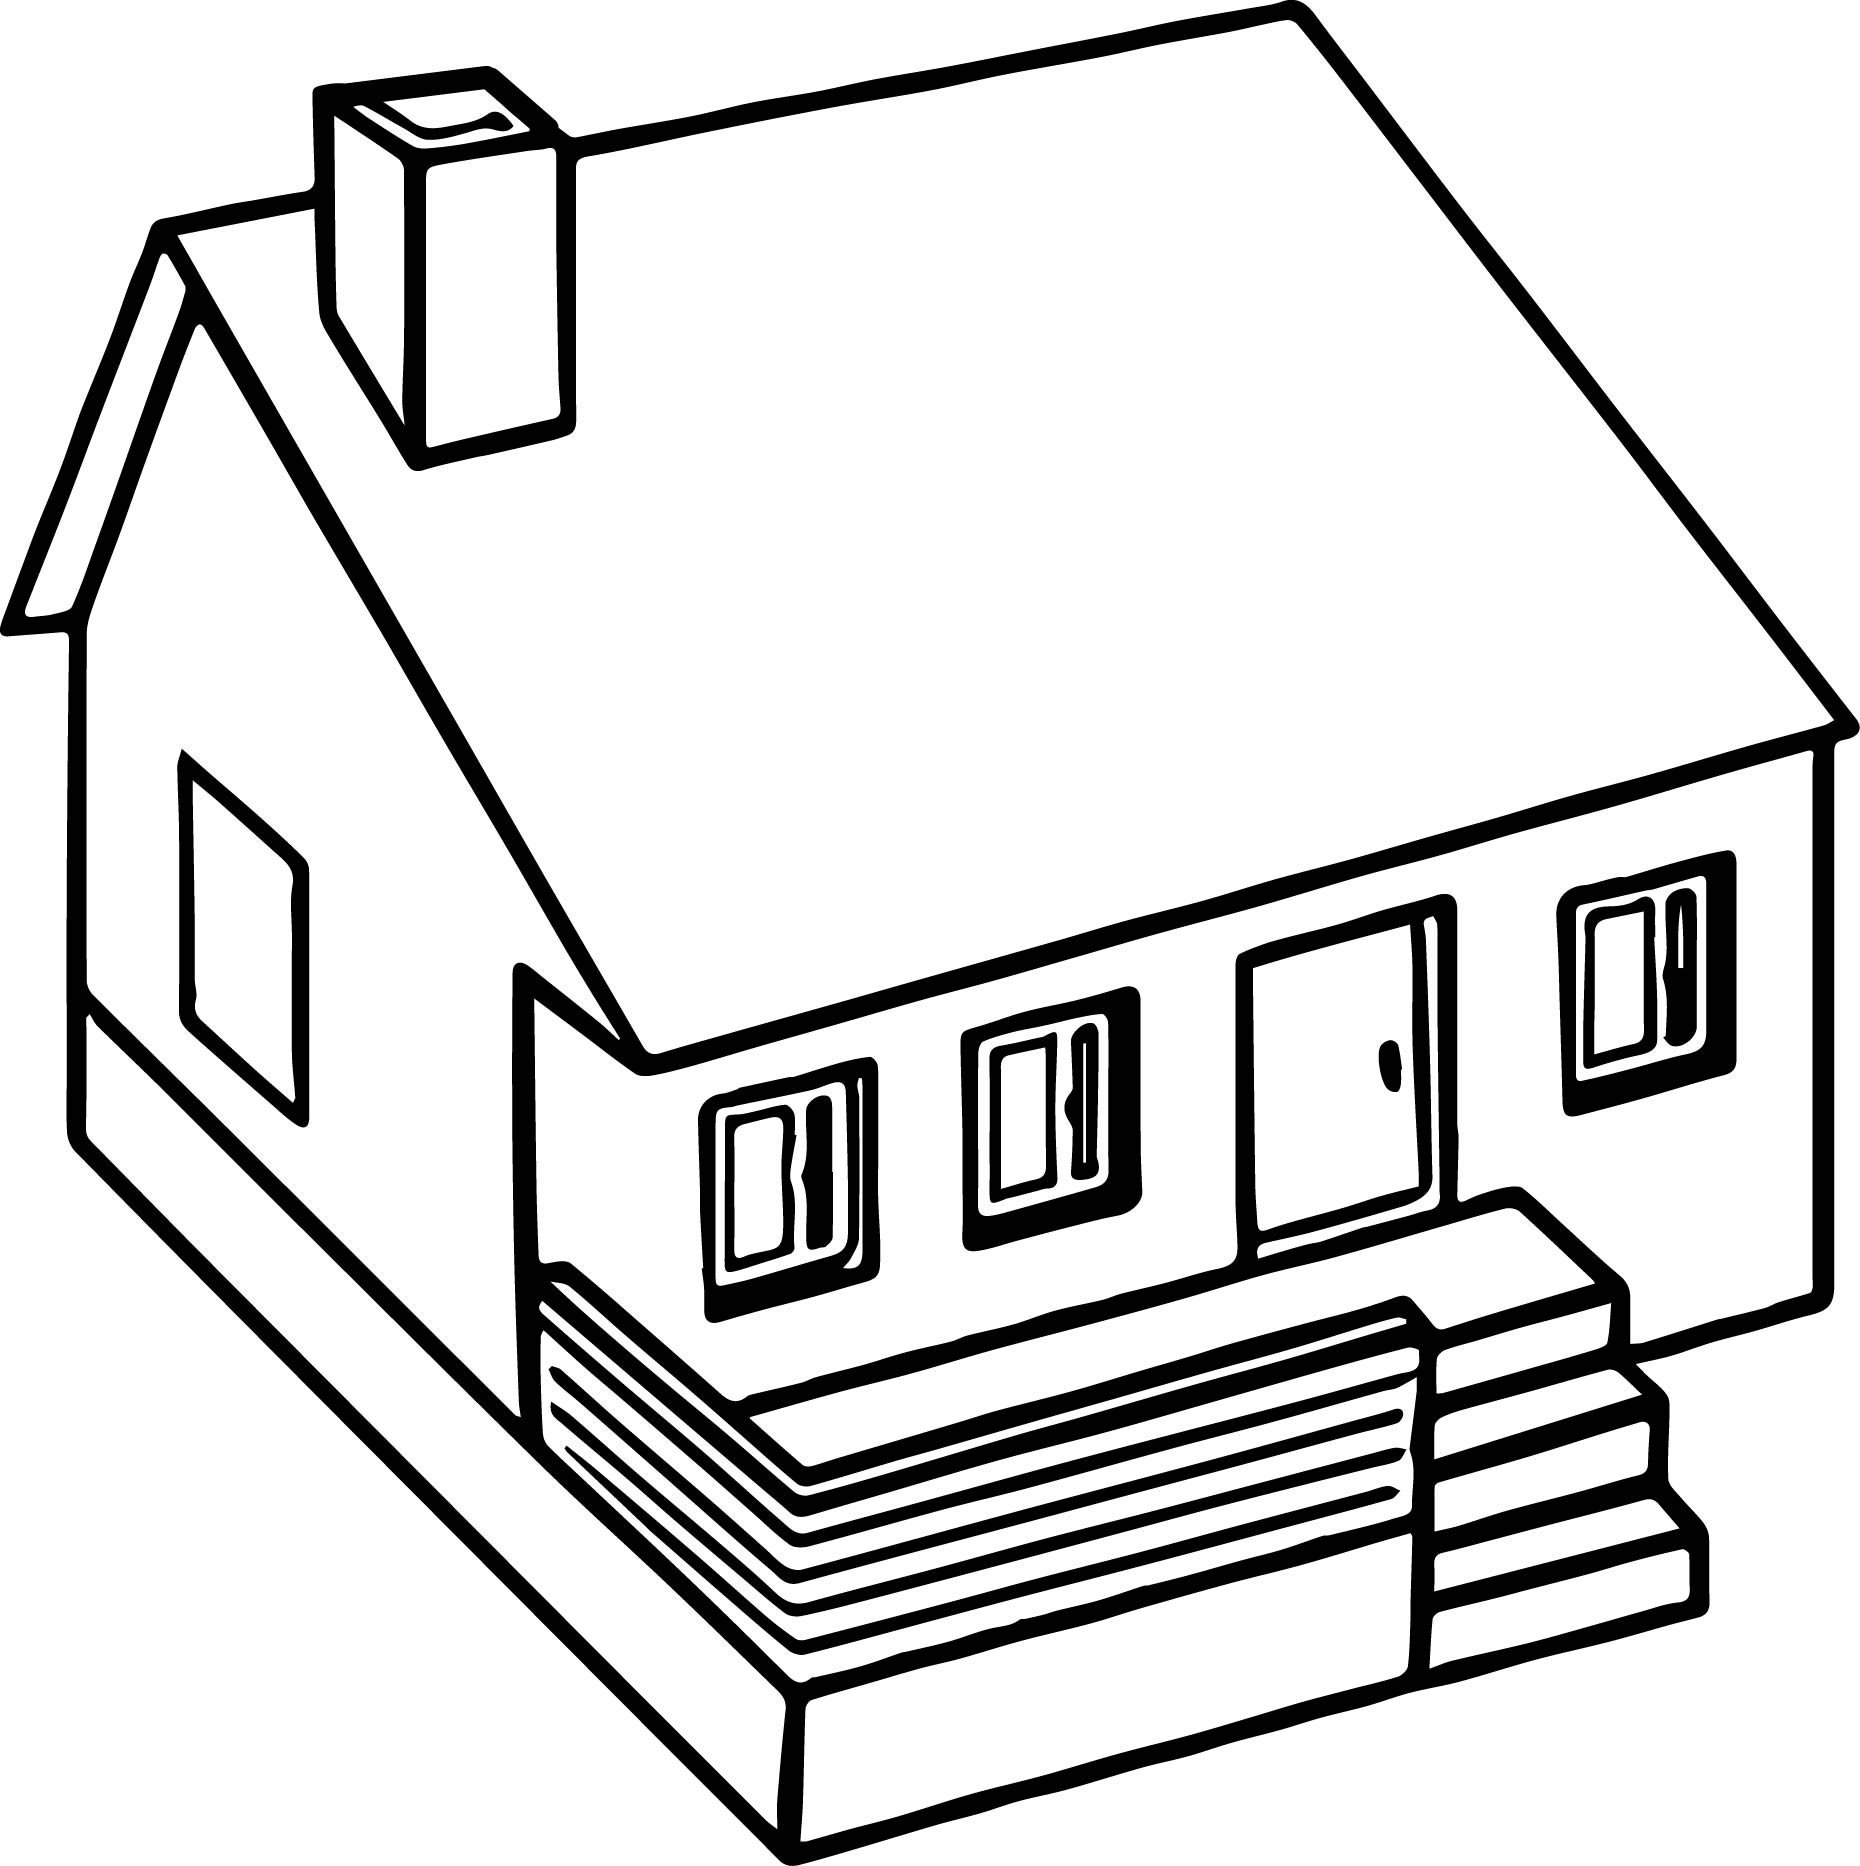 3D Coloring Pages Interesting Cute 3D Home Coloring Page  Wecoloringpage Decorating Inspiration